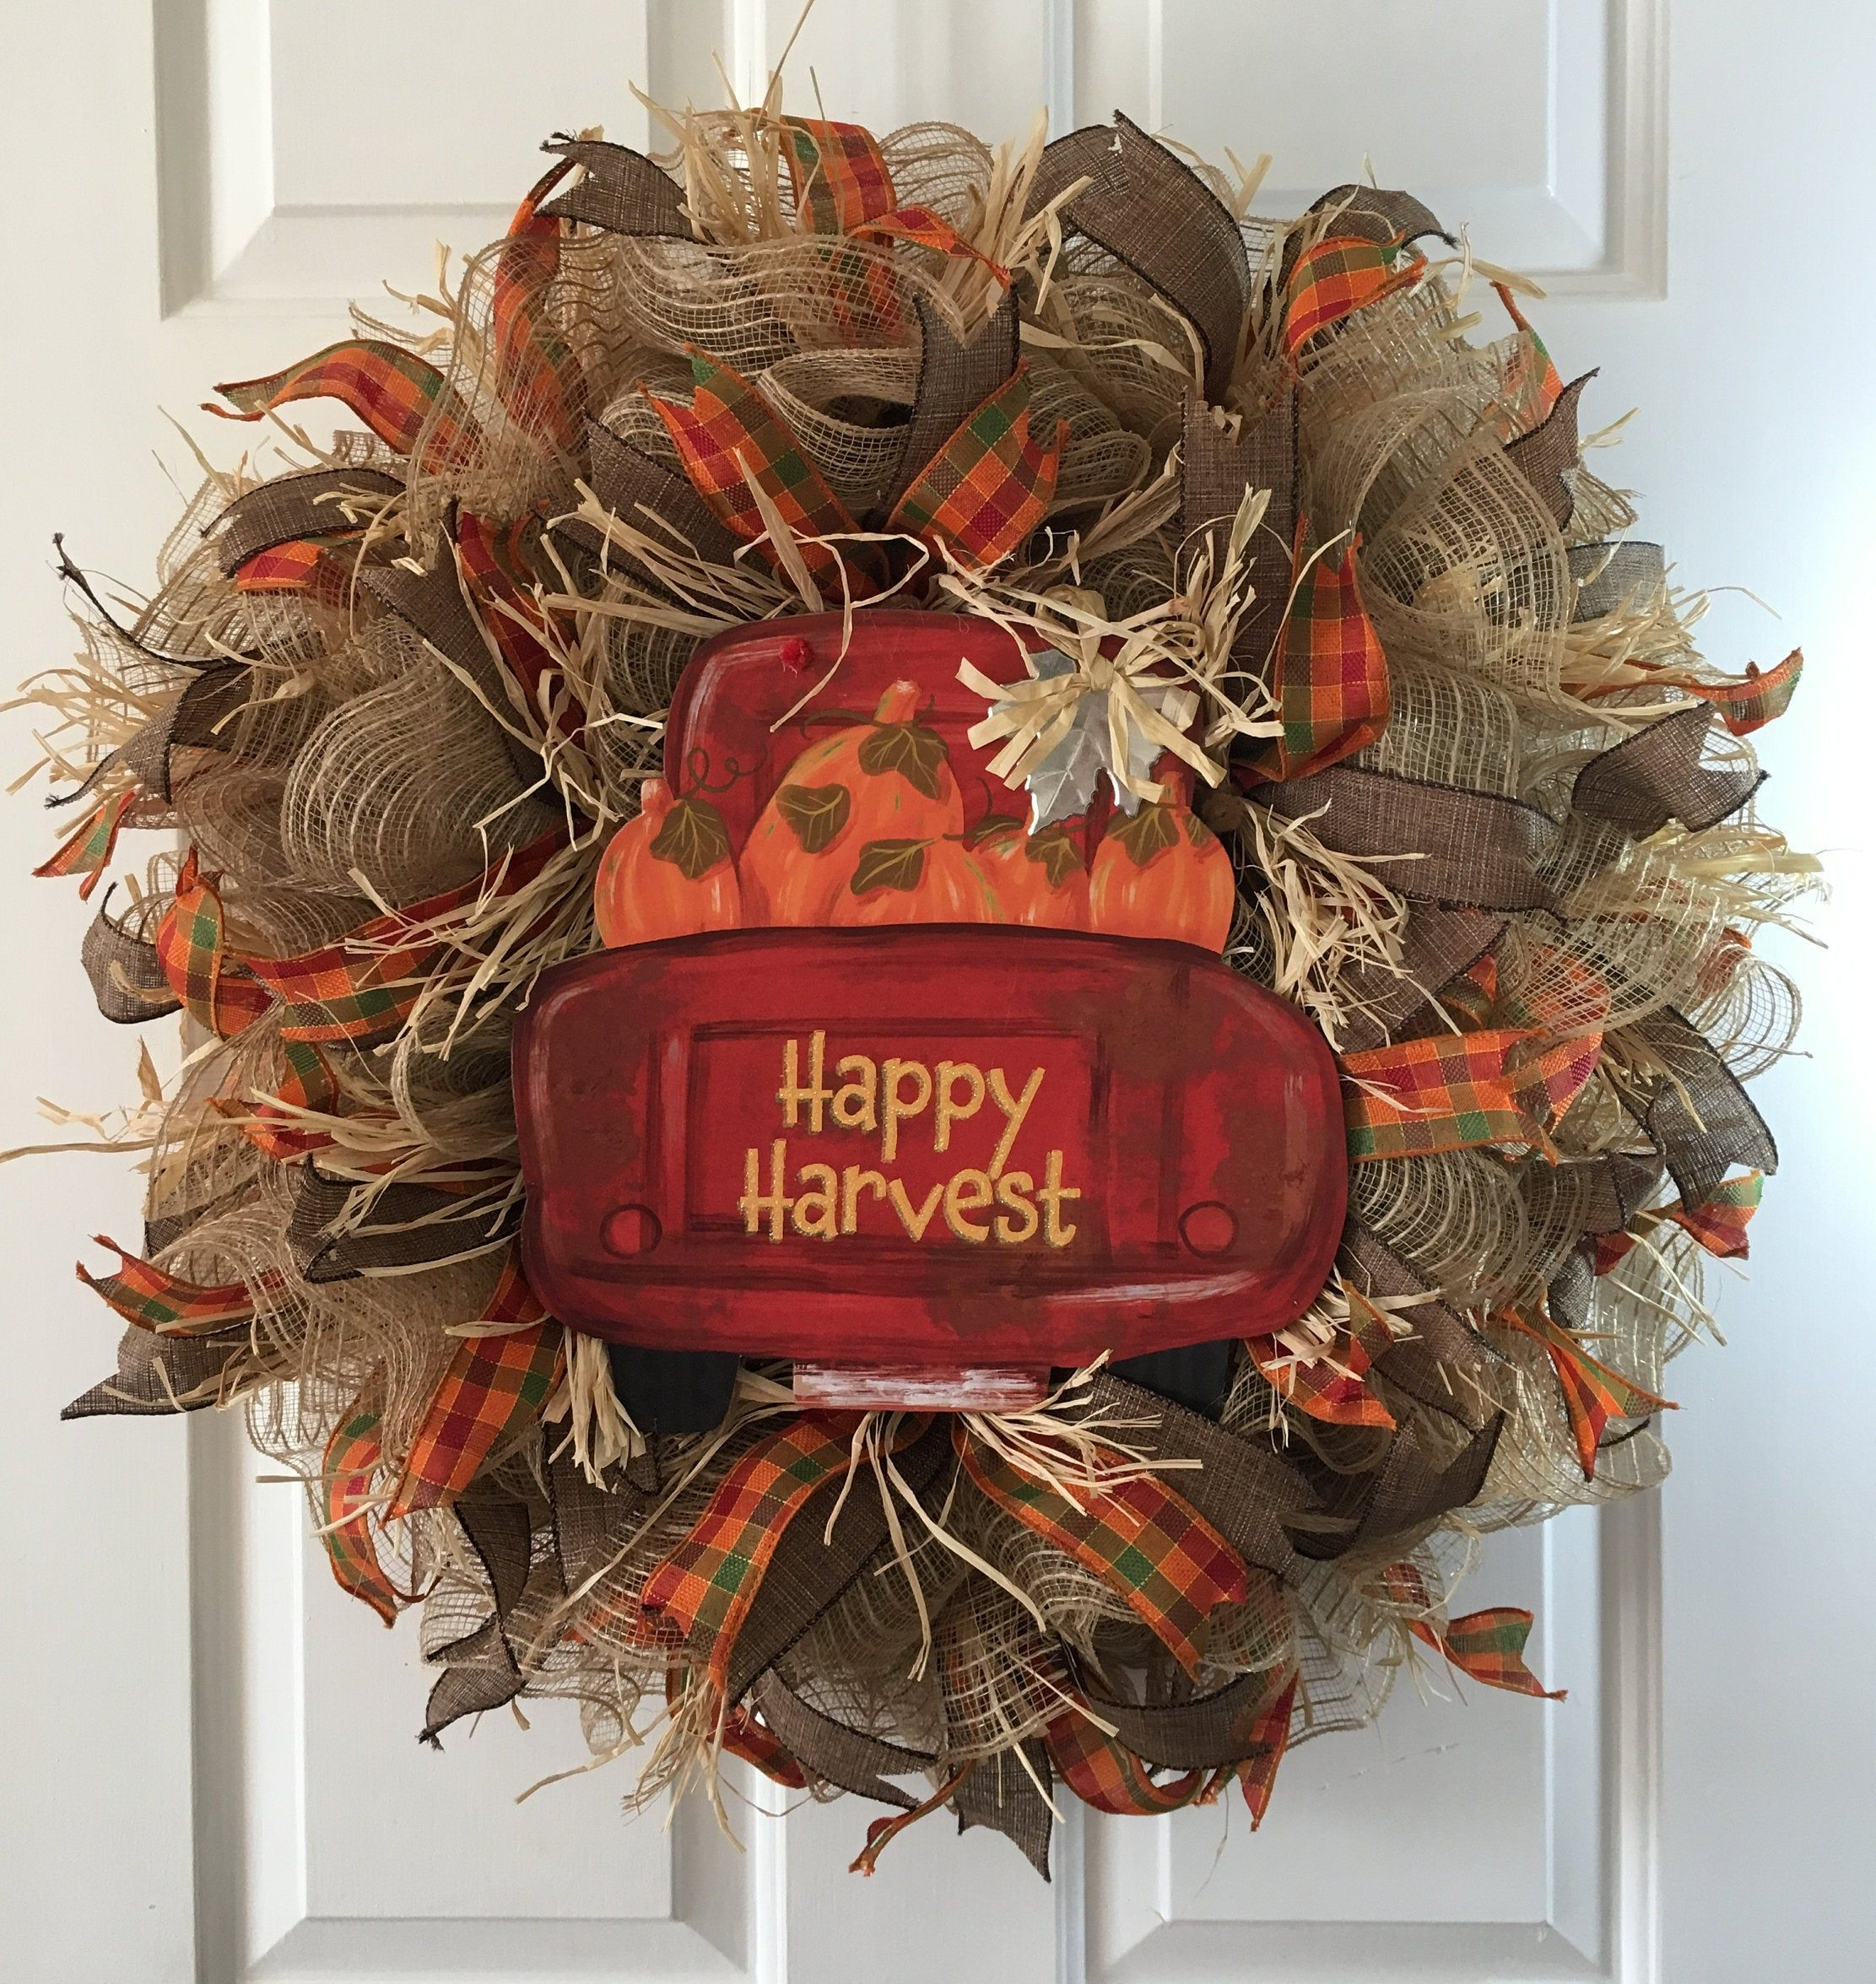 Red Truck Happy Harvest Fall Wreath, Autumn Wreath, Farmhouse Wreath, Country Wreath, Front Door Wreath Red Truck Happy Harvest Wreath is perfect to decorate your for the Fall Season. This wreath would also be great hanging over a fireplace or anywhere in you home or office. The wreath is made using jute deco mesh, wired ribbons, raffia, wood sign on a metal frame. The wreath is perfect for indoor or outdoor use.  Wreath measures about 24 inches and is about 6 inches deep. This wreath would also #fallwreaths